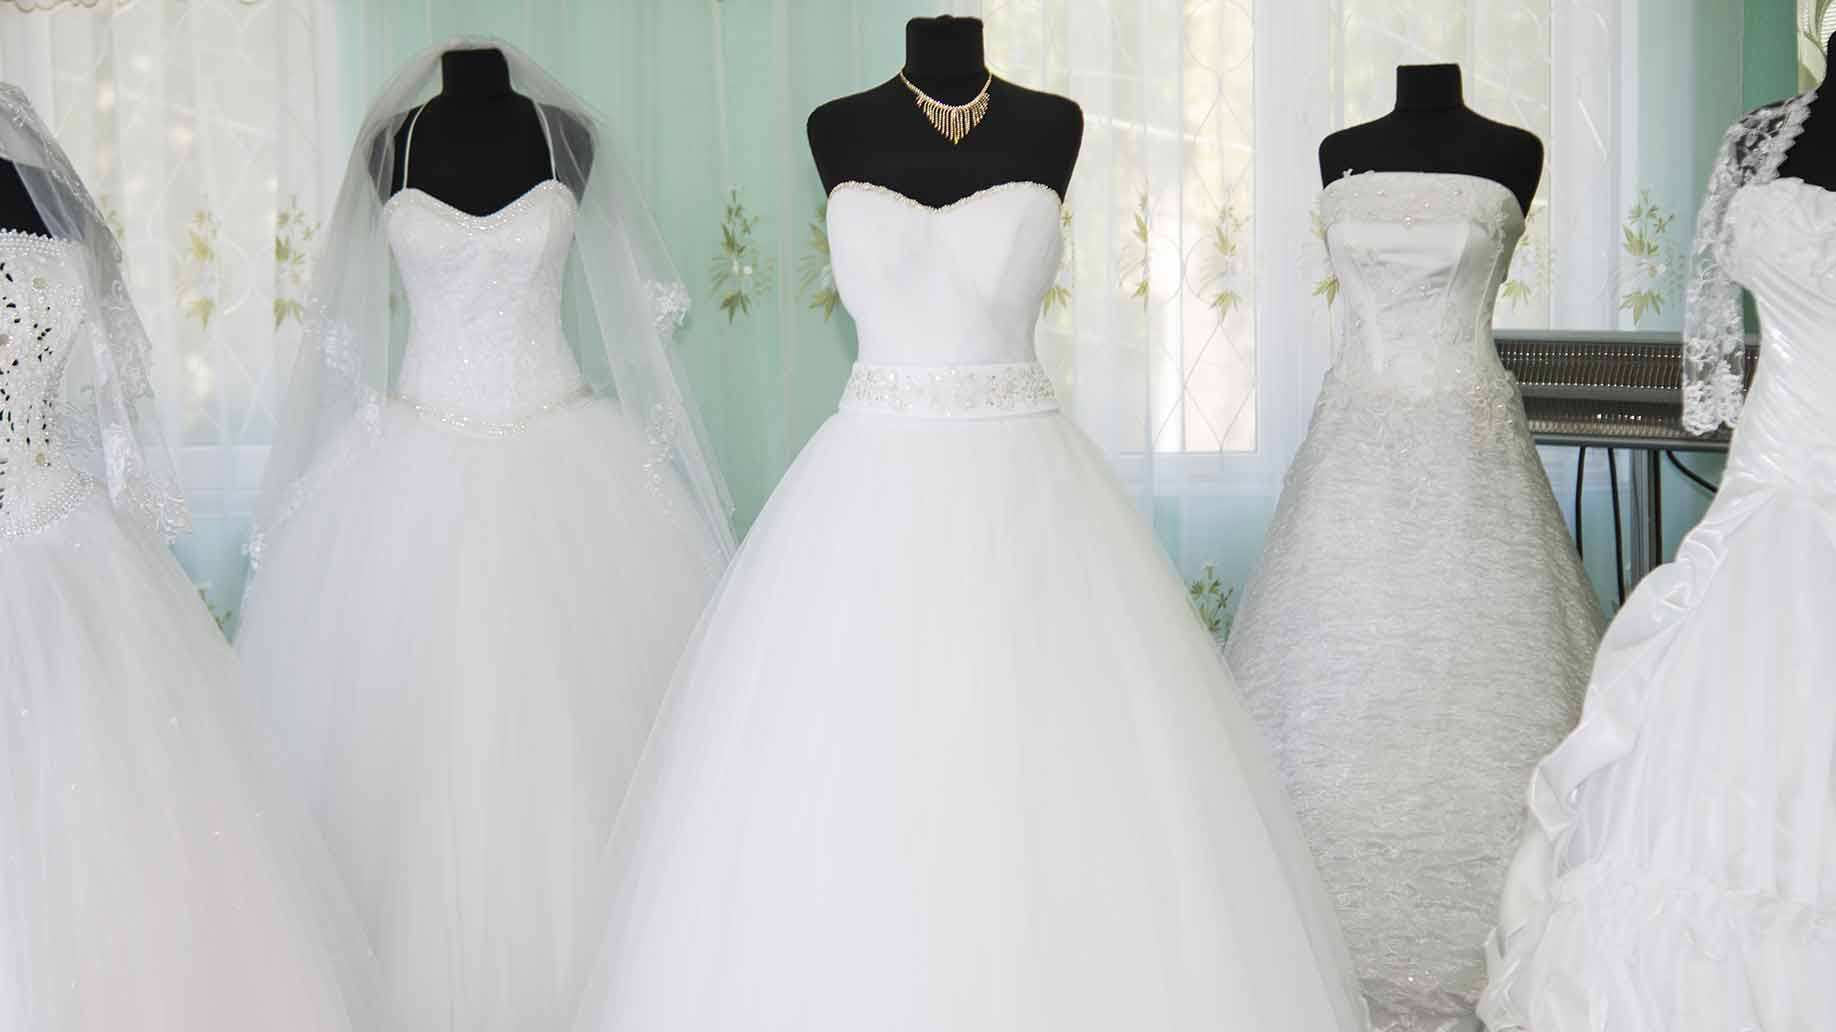 How Much Does a Wedding Dress Cost - Prices